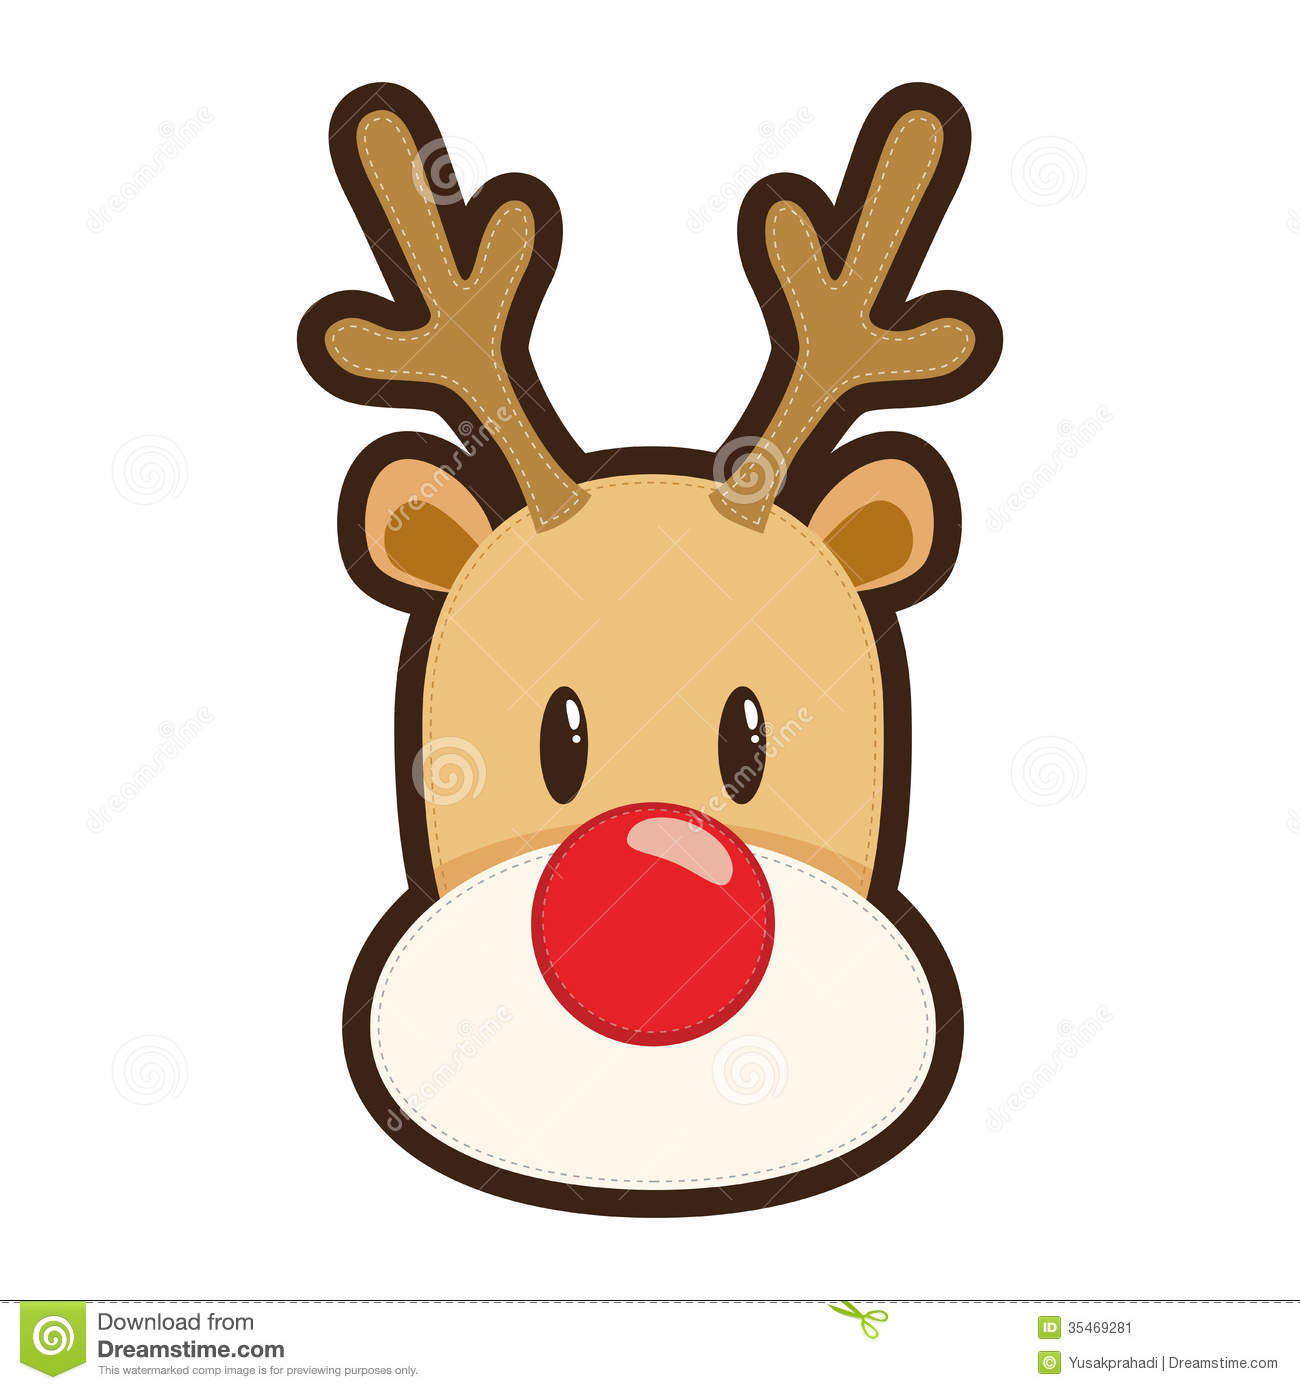 Cartoon Illustration Of Rudol - Rudolph The Red Nosed Reindeer Clipart